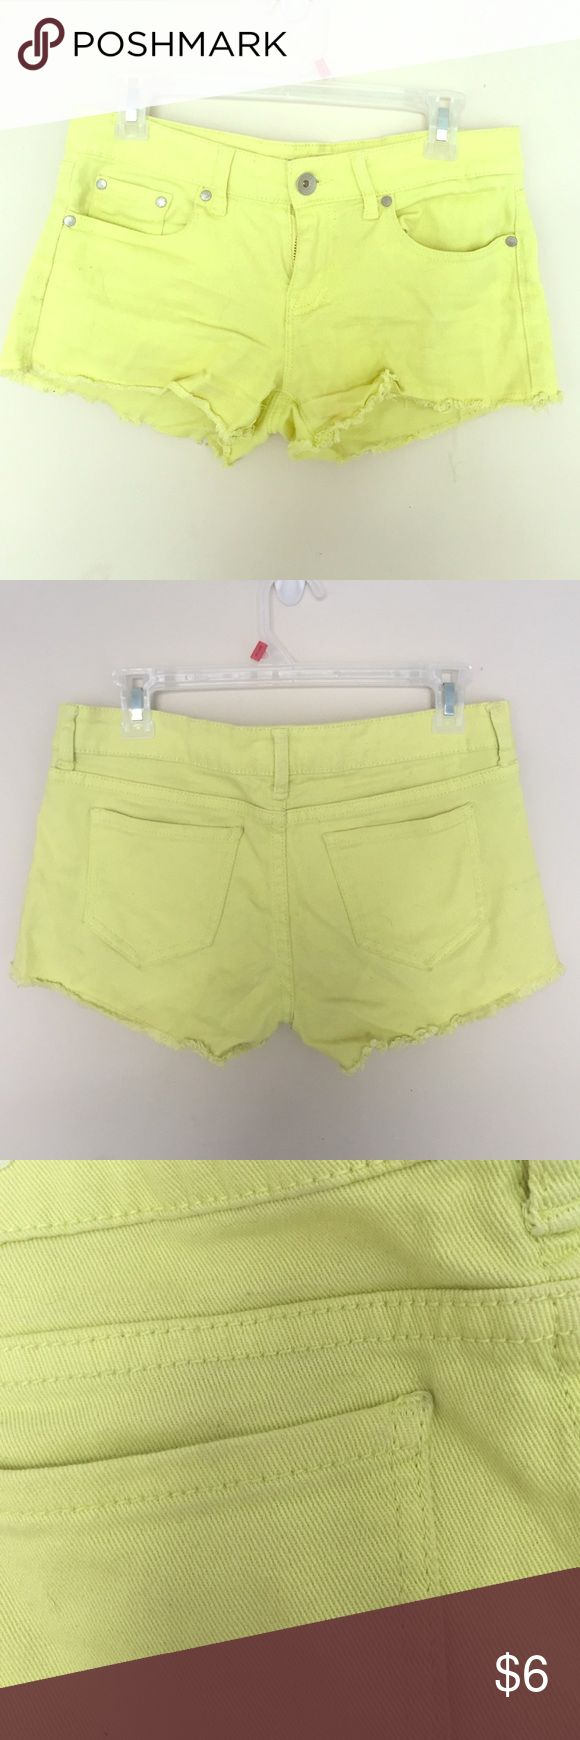 Neon green shorts These shorts are a size 6 and are in excellent condition! No rips or stains. refuge Shorts